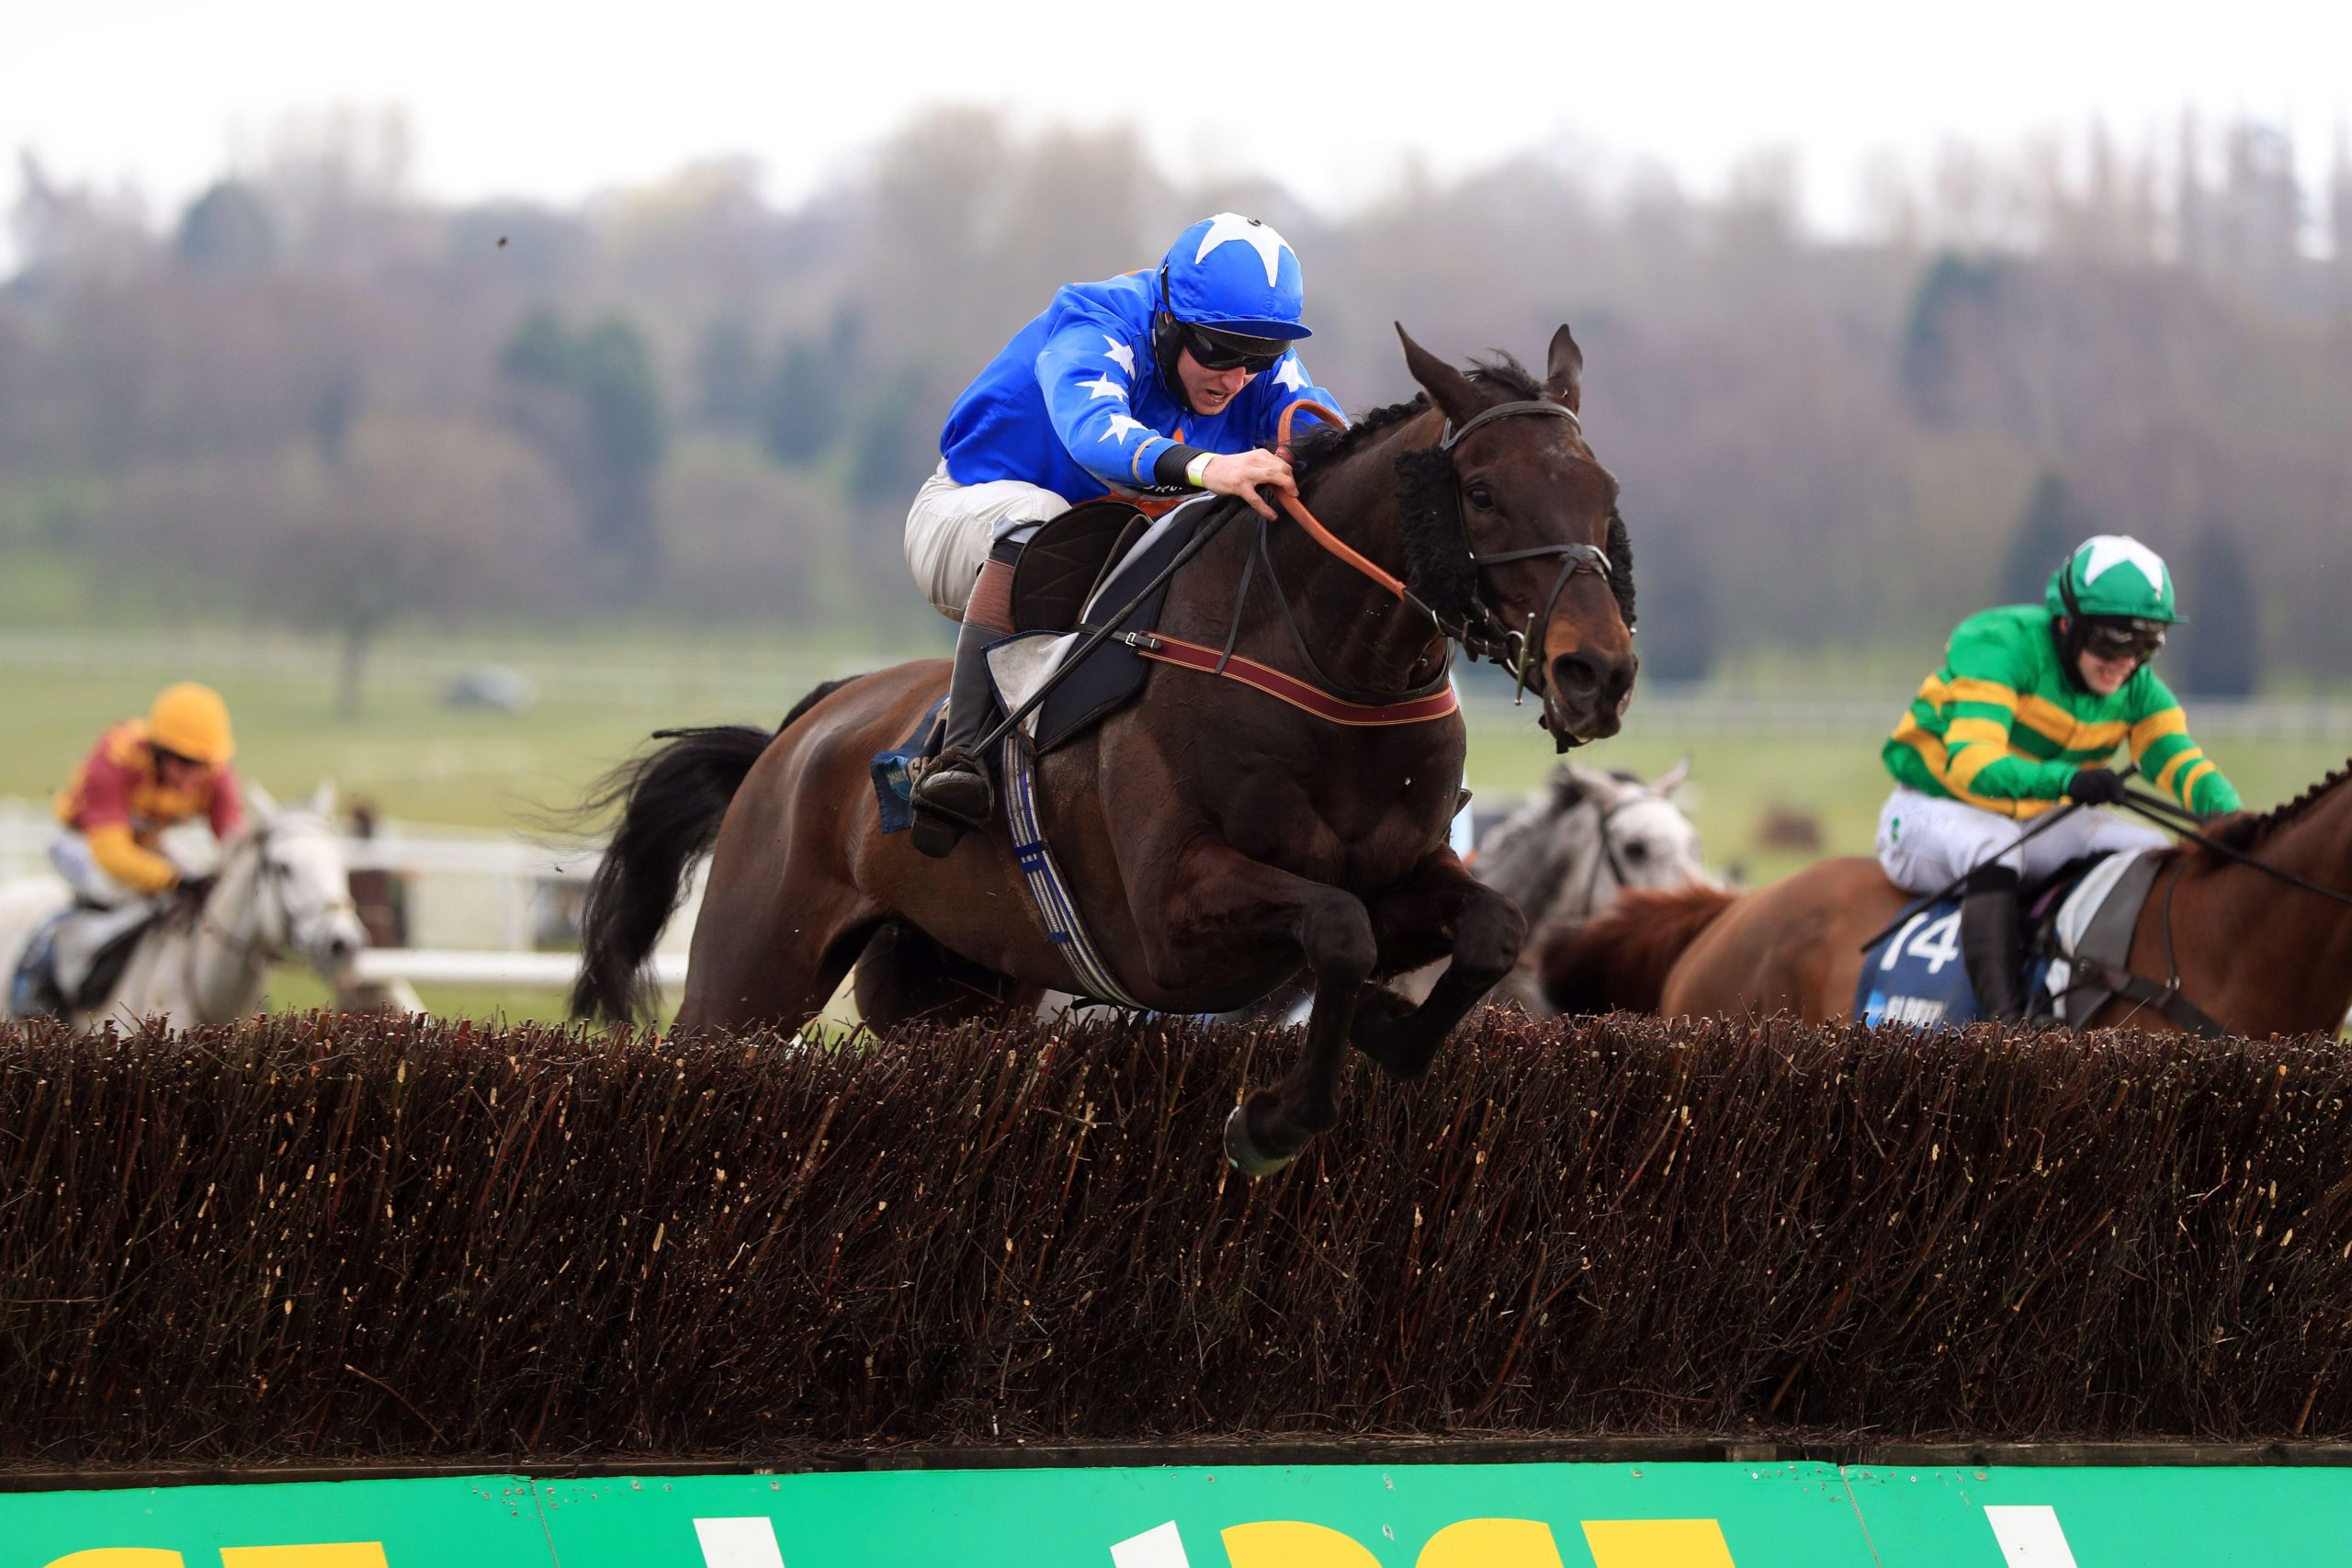 Mighty Thunder ridden by Blair Campbell during the Marston's 61 Deep Midlands Grand National at Uttoxeter racecourse. Picture date: Saturday March 20, 2021. See PA story RACING Uttoxeter. Photo credit should read: Mike Egerton/PA Wire. RESTRICTIONS: Use s